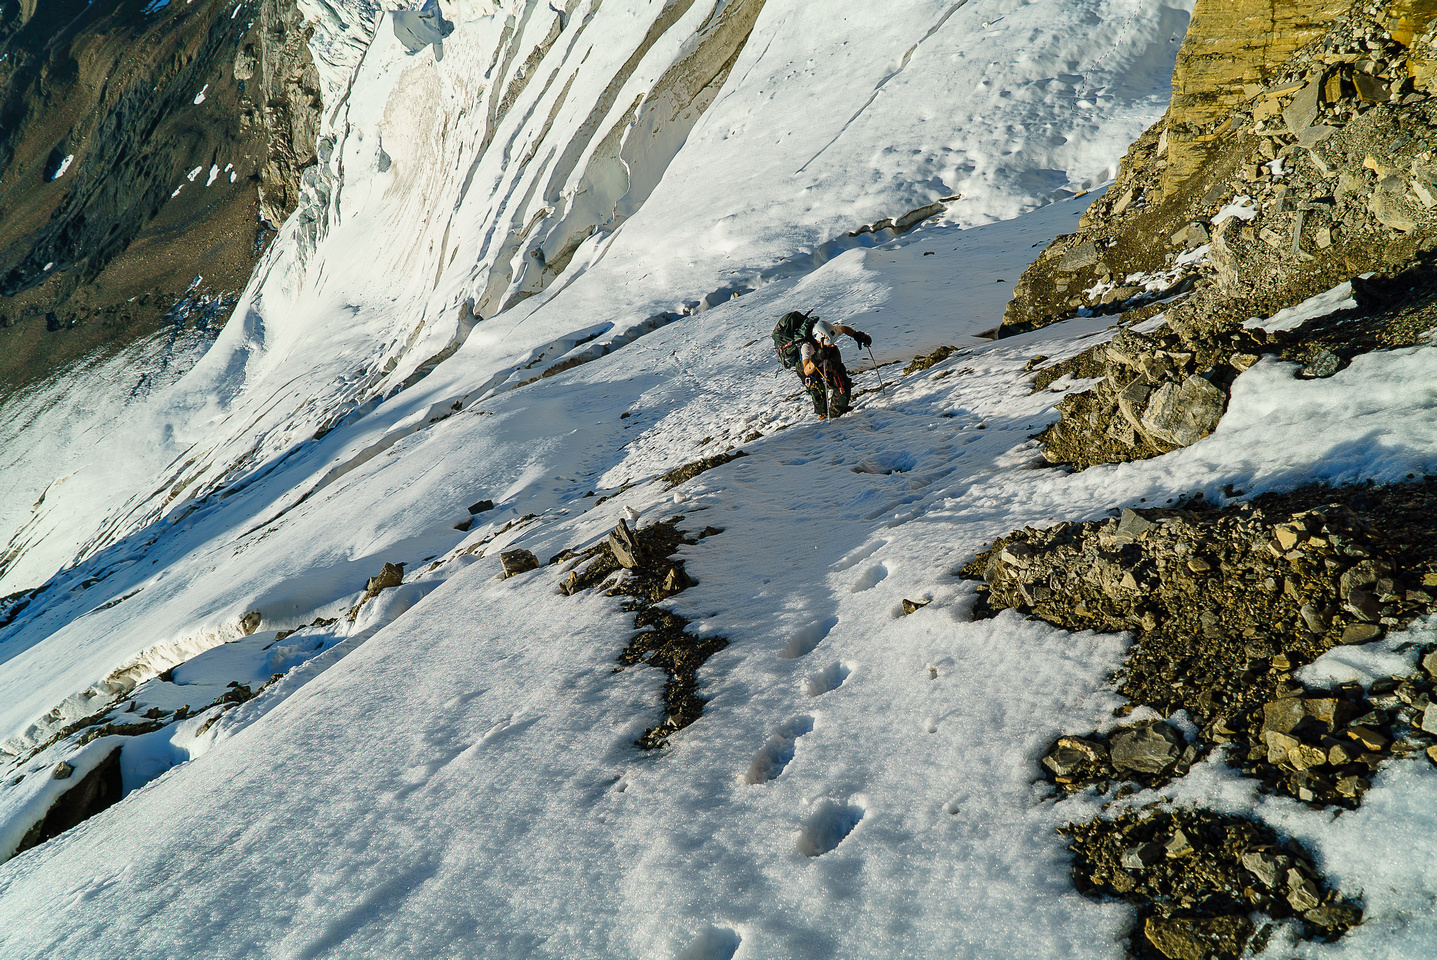 Coming up the first couloir.